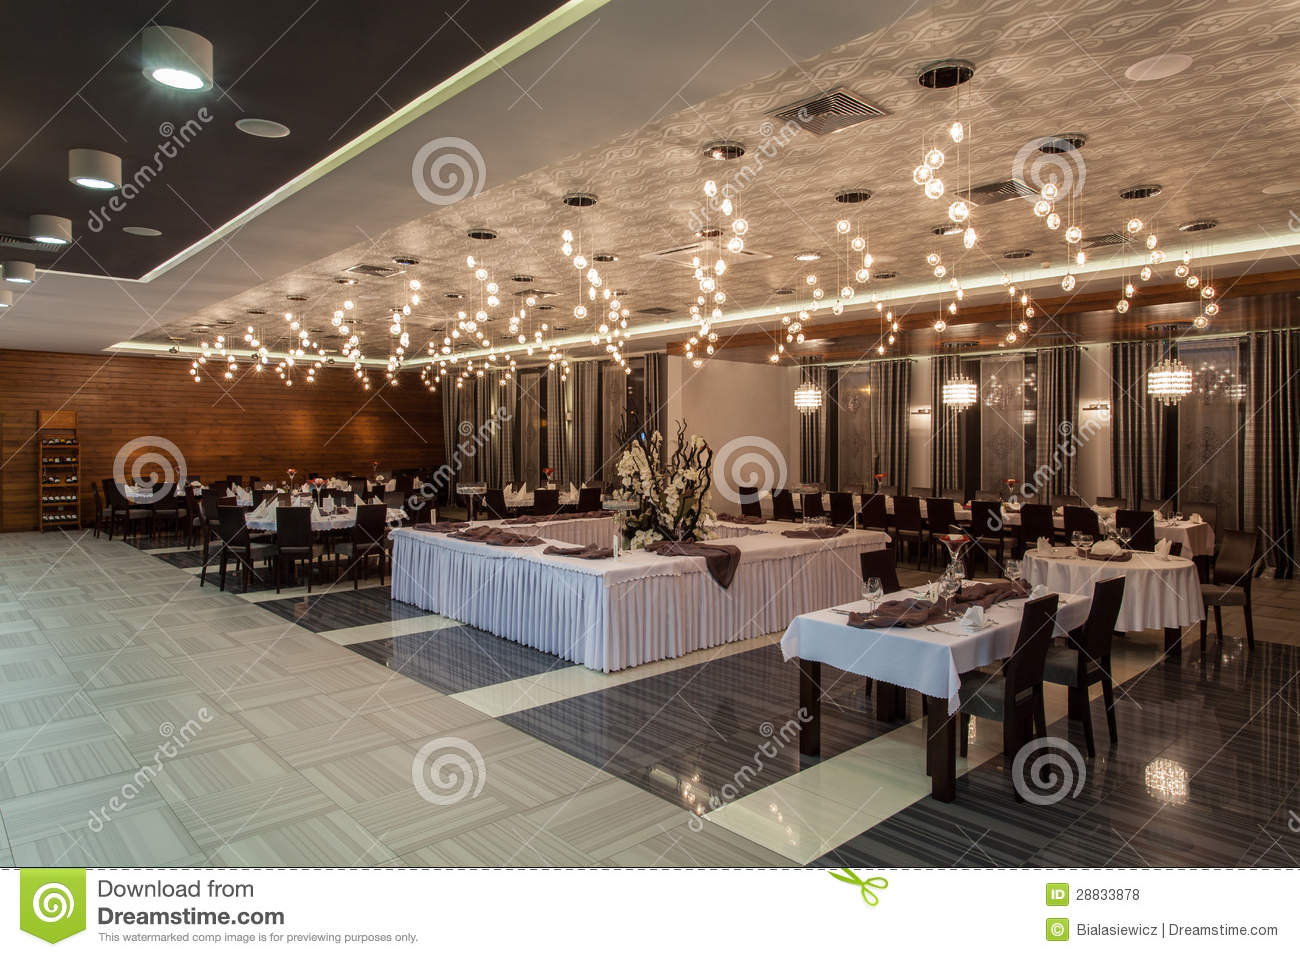 Woodland hotel - Dining room in a hotel